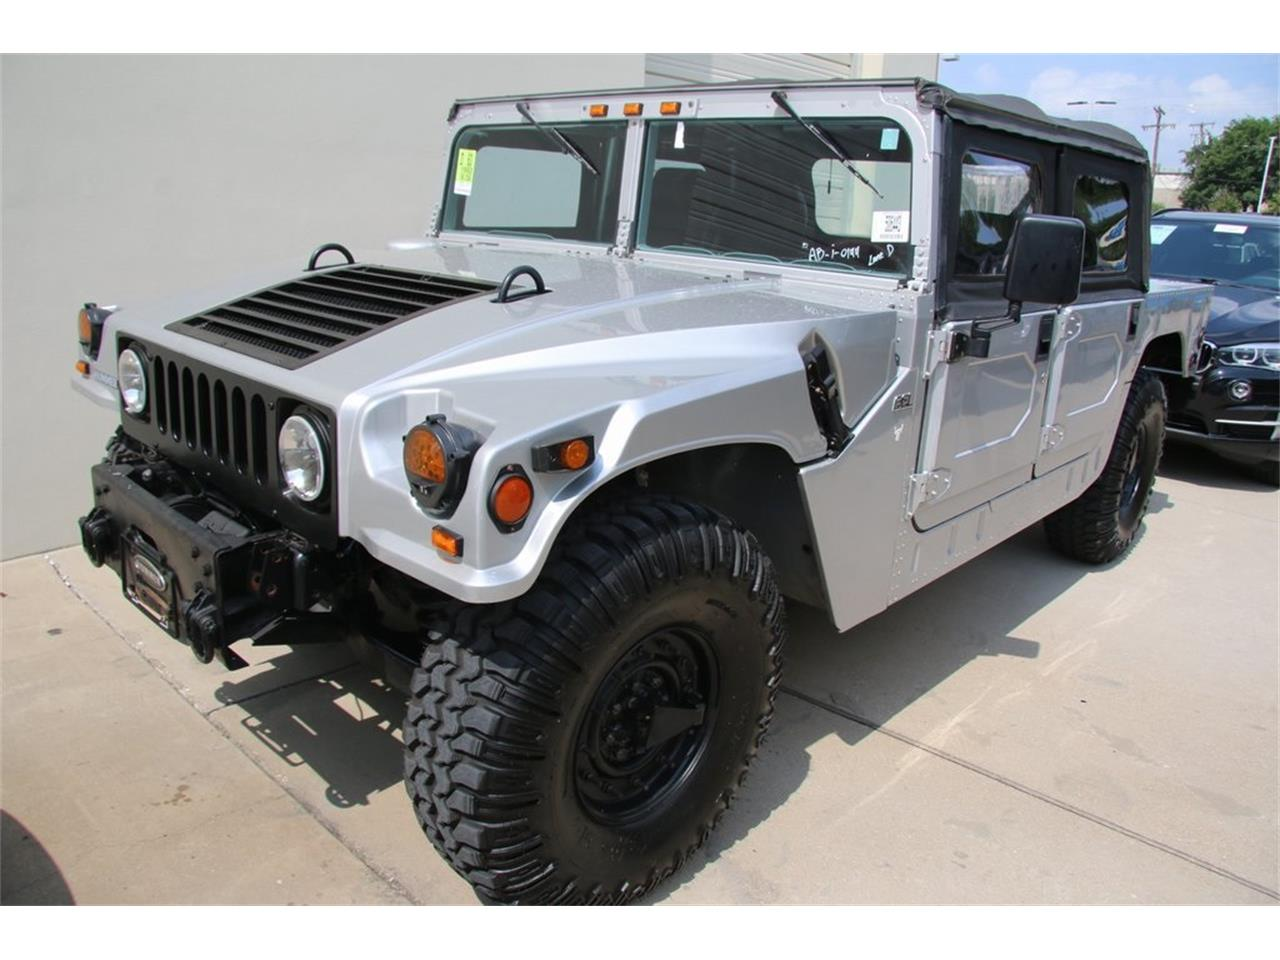 For Sale: 133 Hummer H13 in Carrollton, Texas | hummer h1 for sale in texas